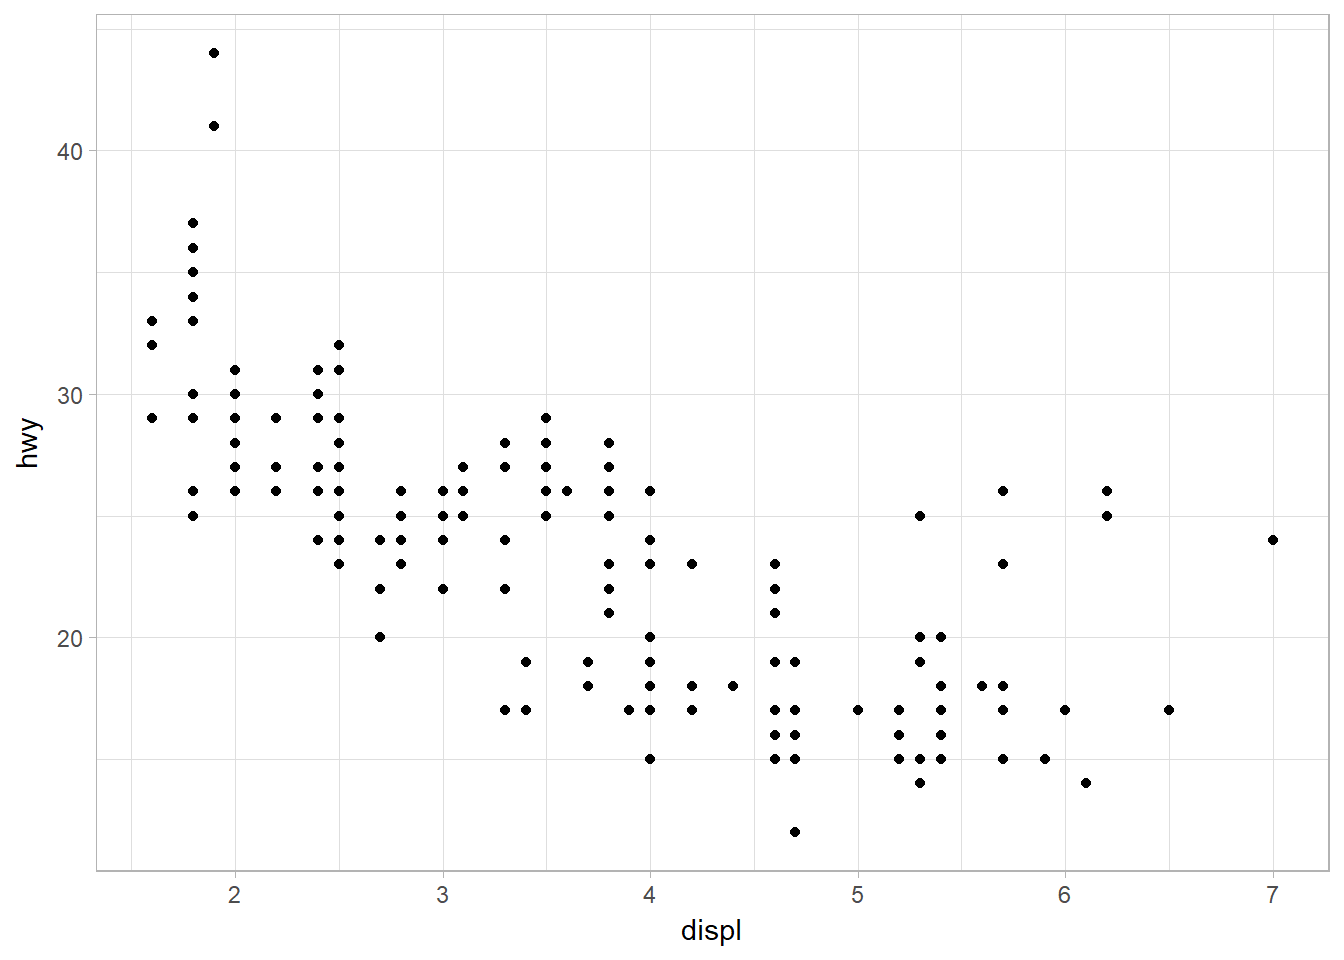 Scatterplot of hwy against disply